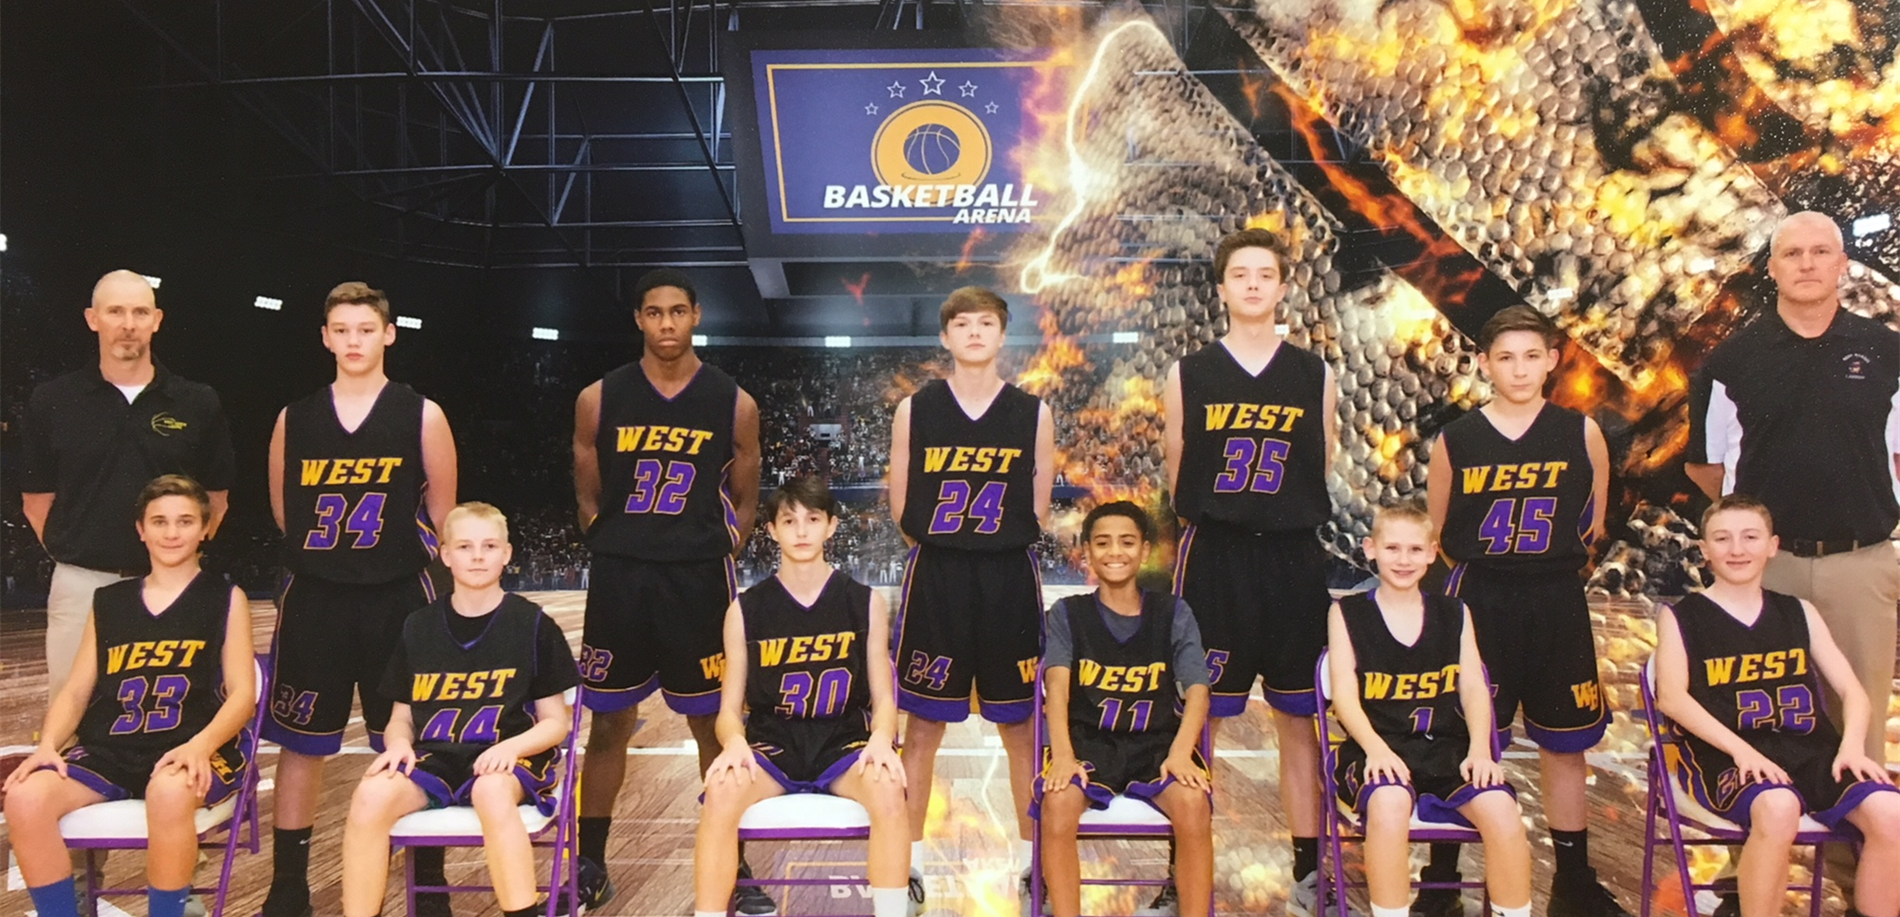 2018-2019 WHMS 8th Grade Boys Basketball - Image Courtesy: Capture Creative Images